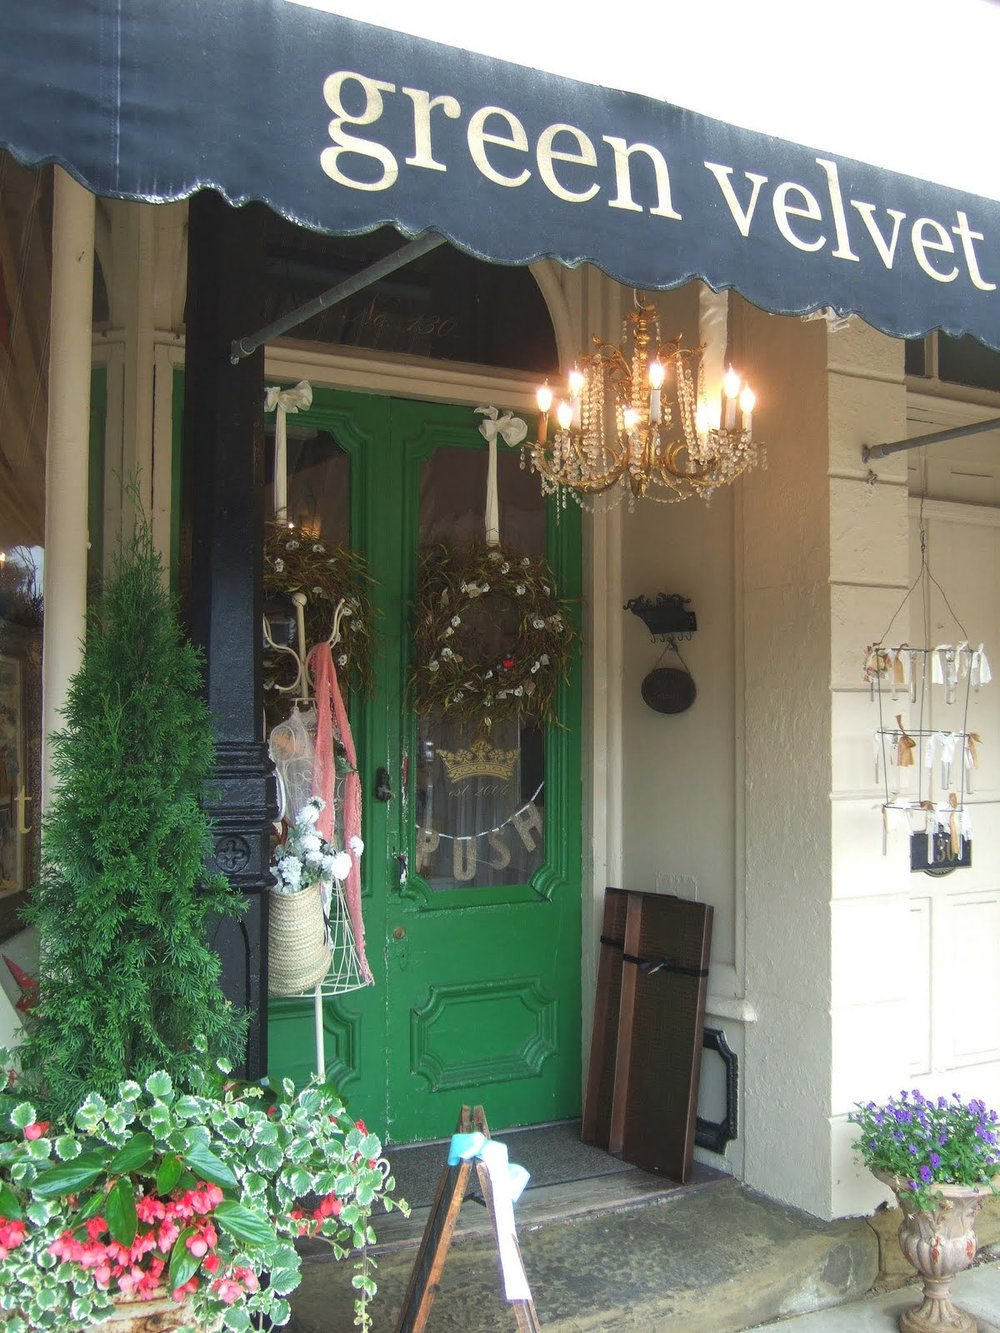 Shopping - Green Velvet.jpg